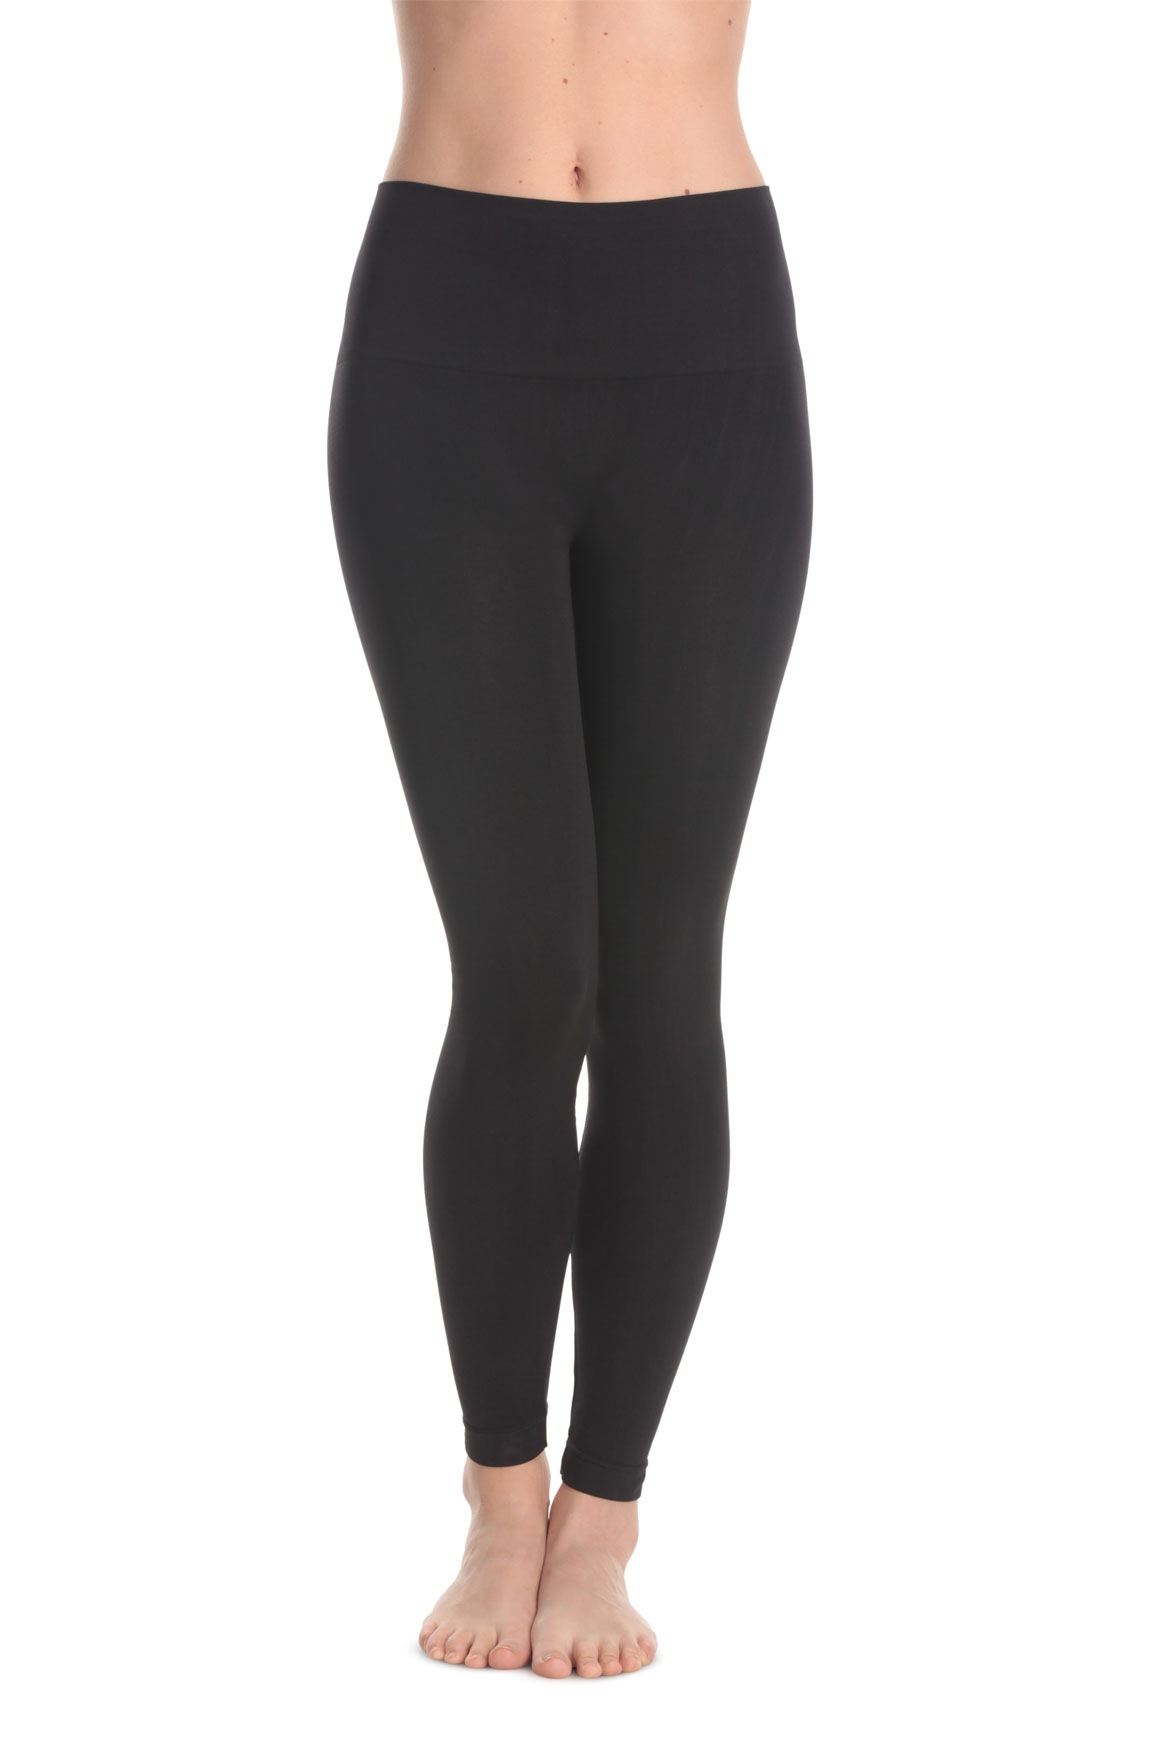 Ambra - 'Killer Figure' legging in black AMSHMWKL